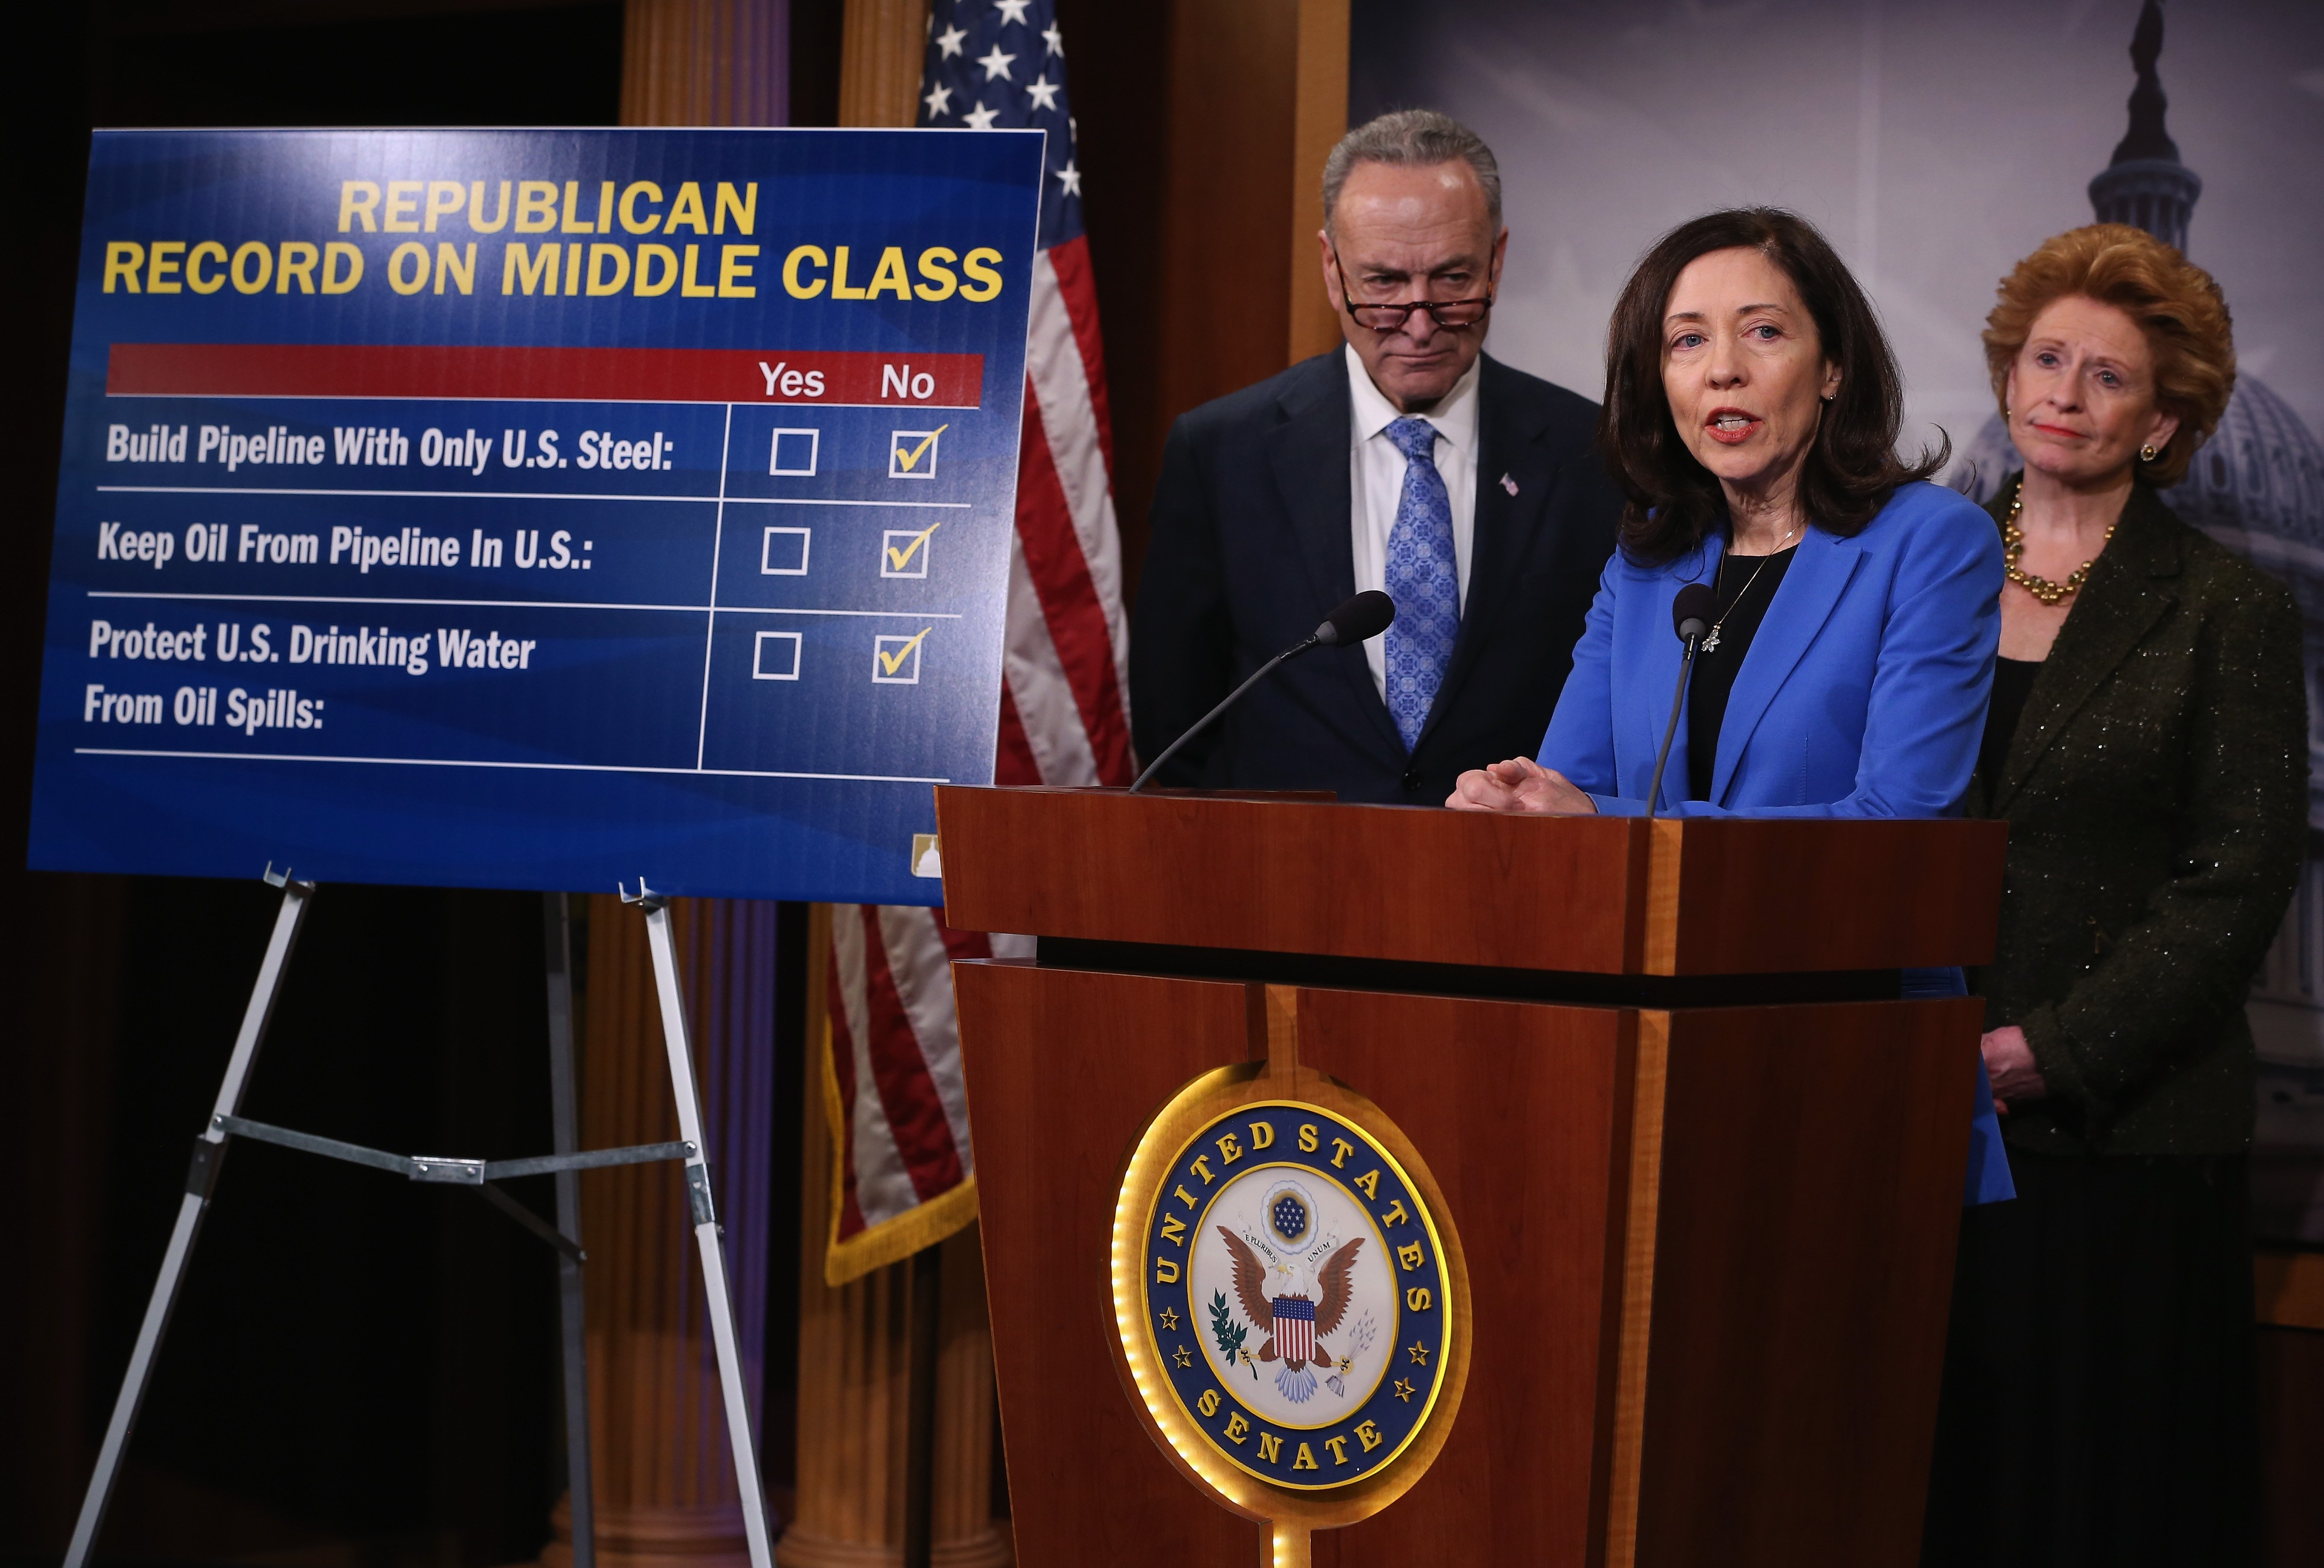 Sen. Maria Cantwell (D-WA) (C) speaks about the Keystone XL Pipeline while flanked by Sen. Chuck Schumer (D-NY) and Sen. Debbie Stabenow (D-MI) during a news conference on Jan. 29, 2015 at the US Capitol in Washington D.C.